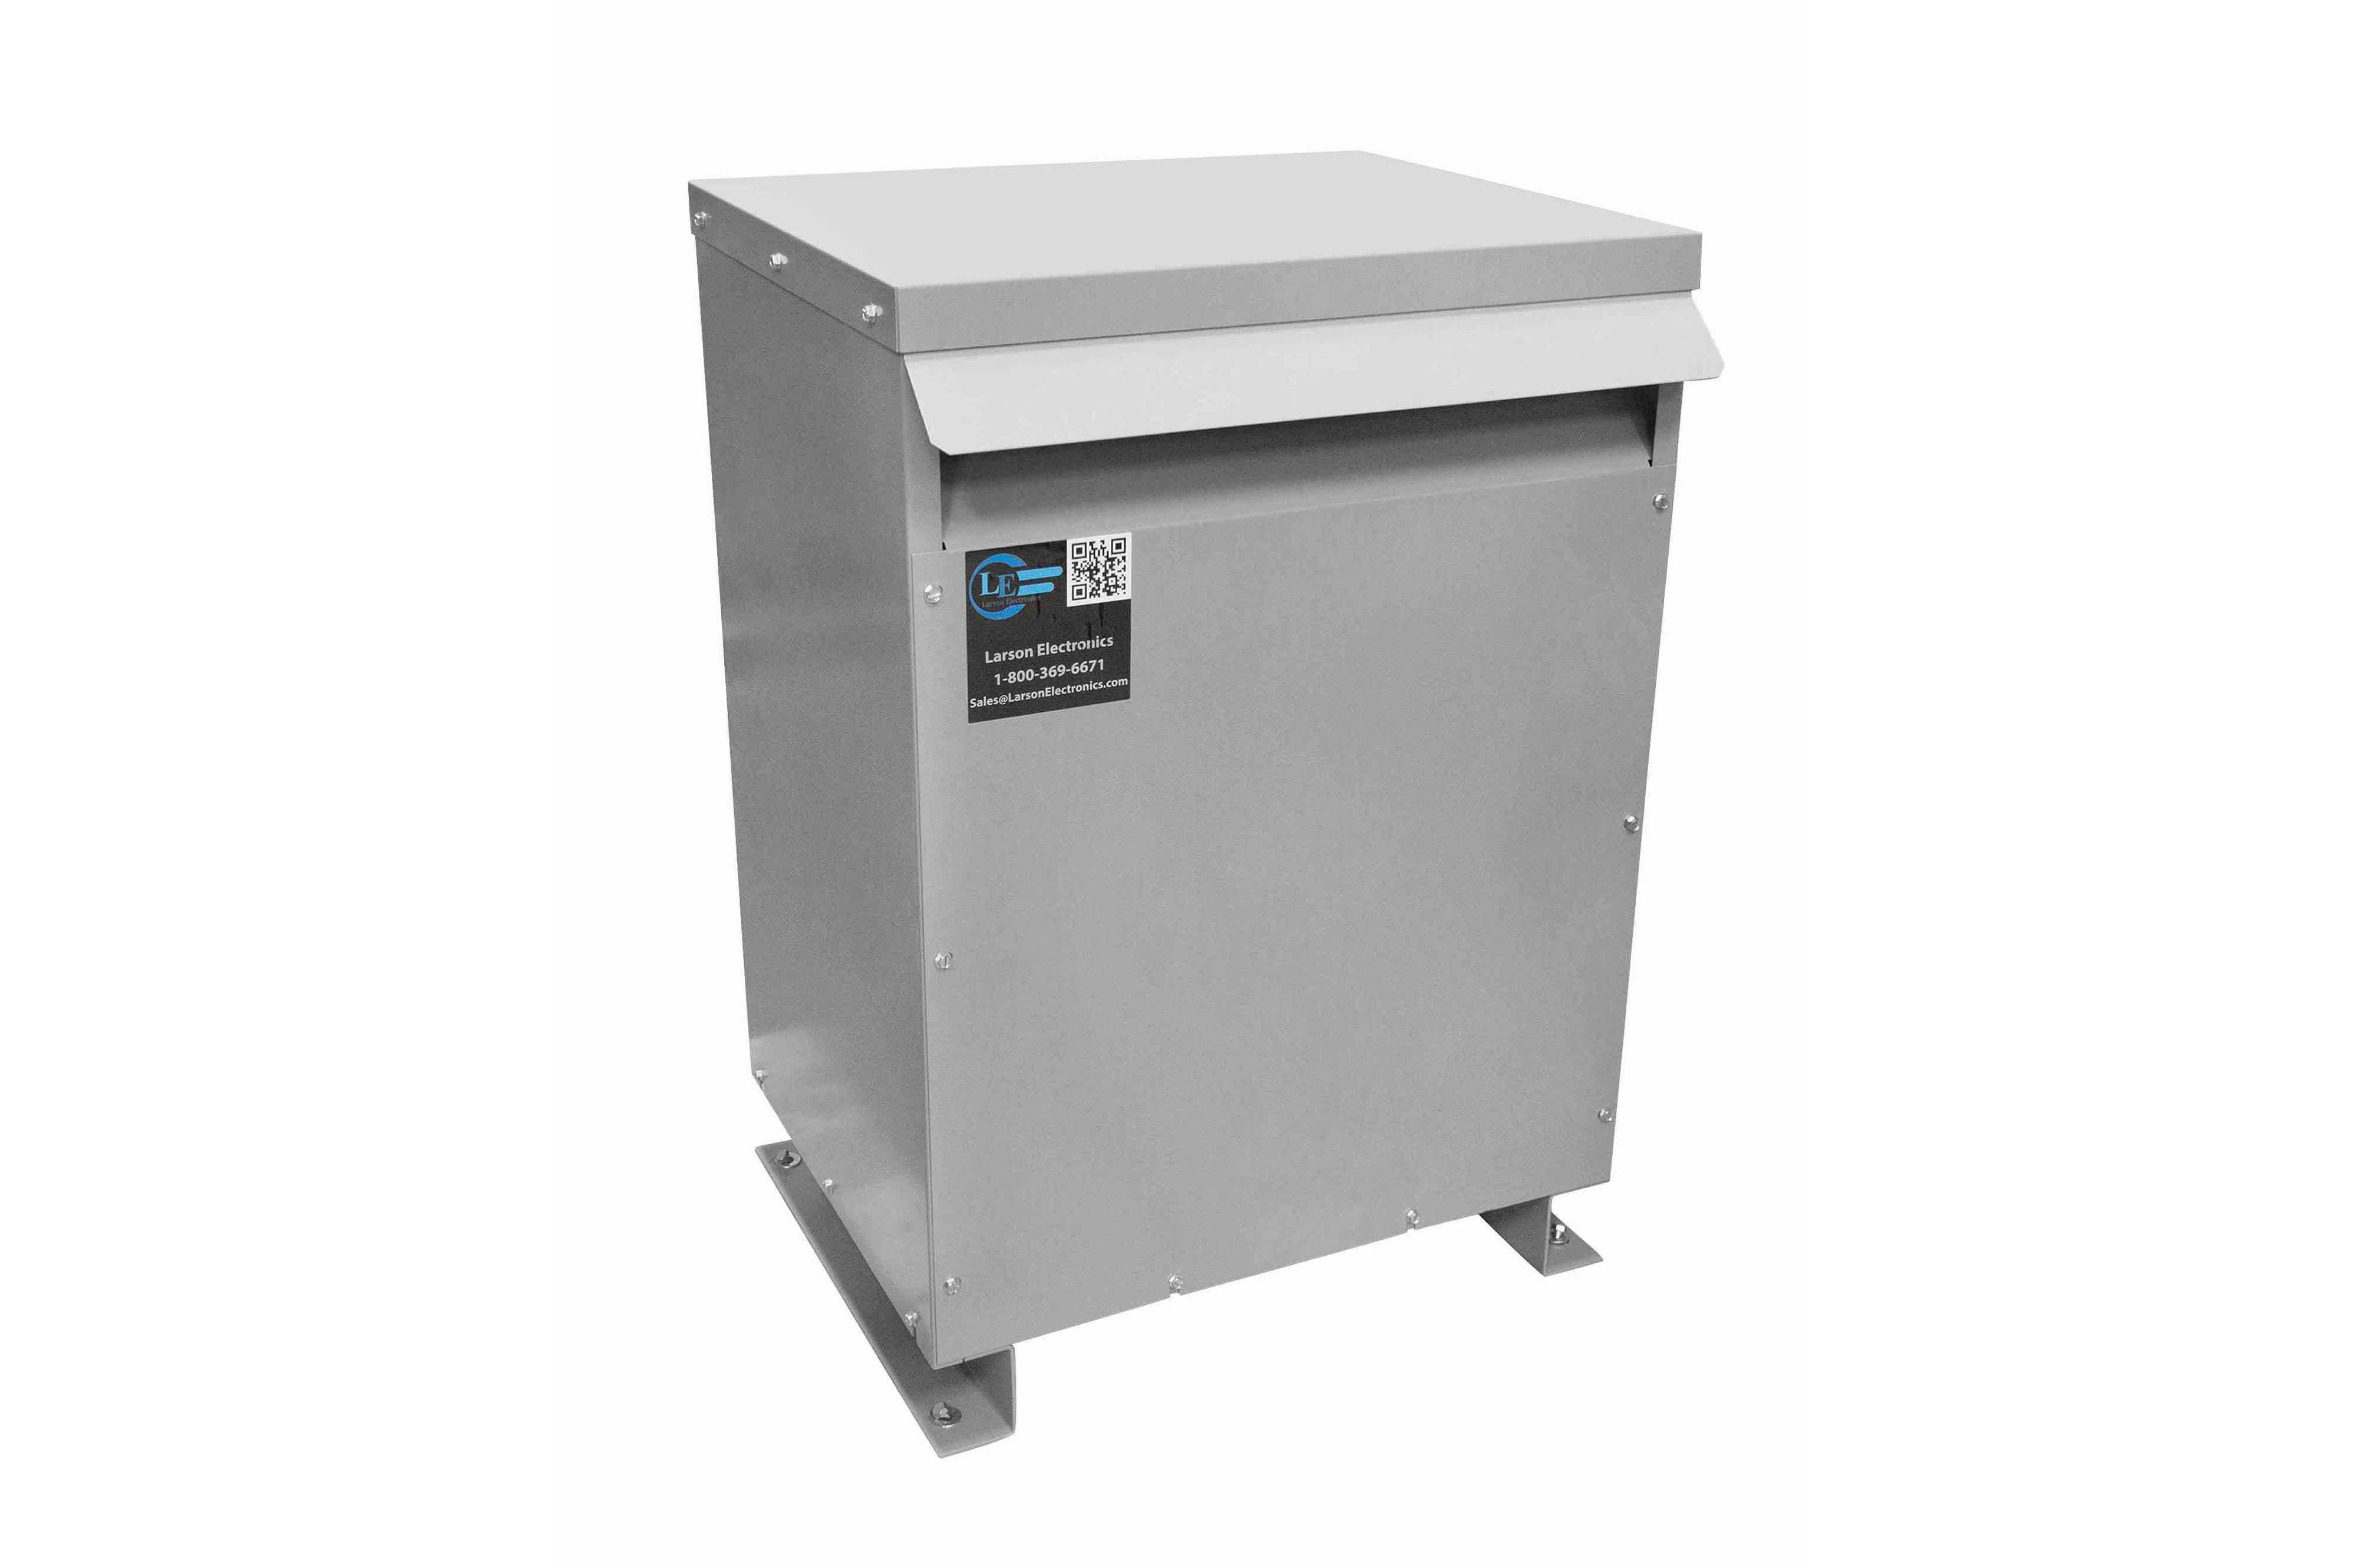 110 kVA 3PH Isolation Transformer, 575V Wye Primary, 415Y/240 Wye-N Secondary, N3R, Ventilated, 60 Hz